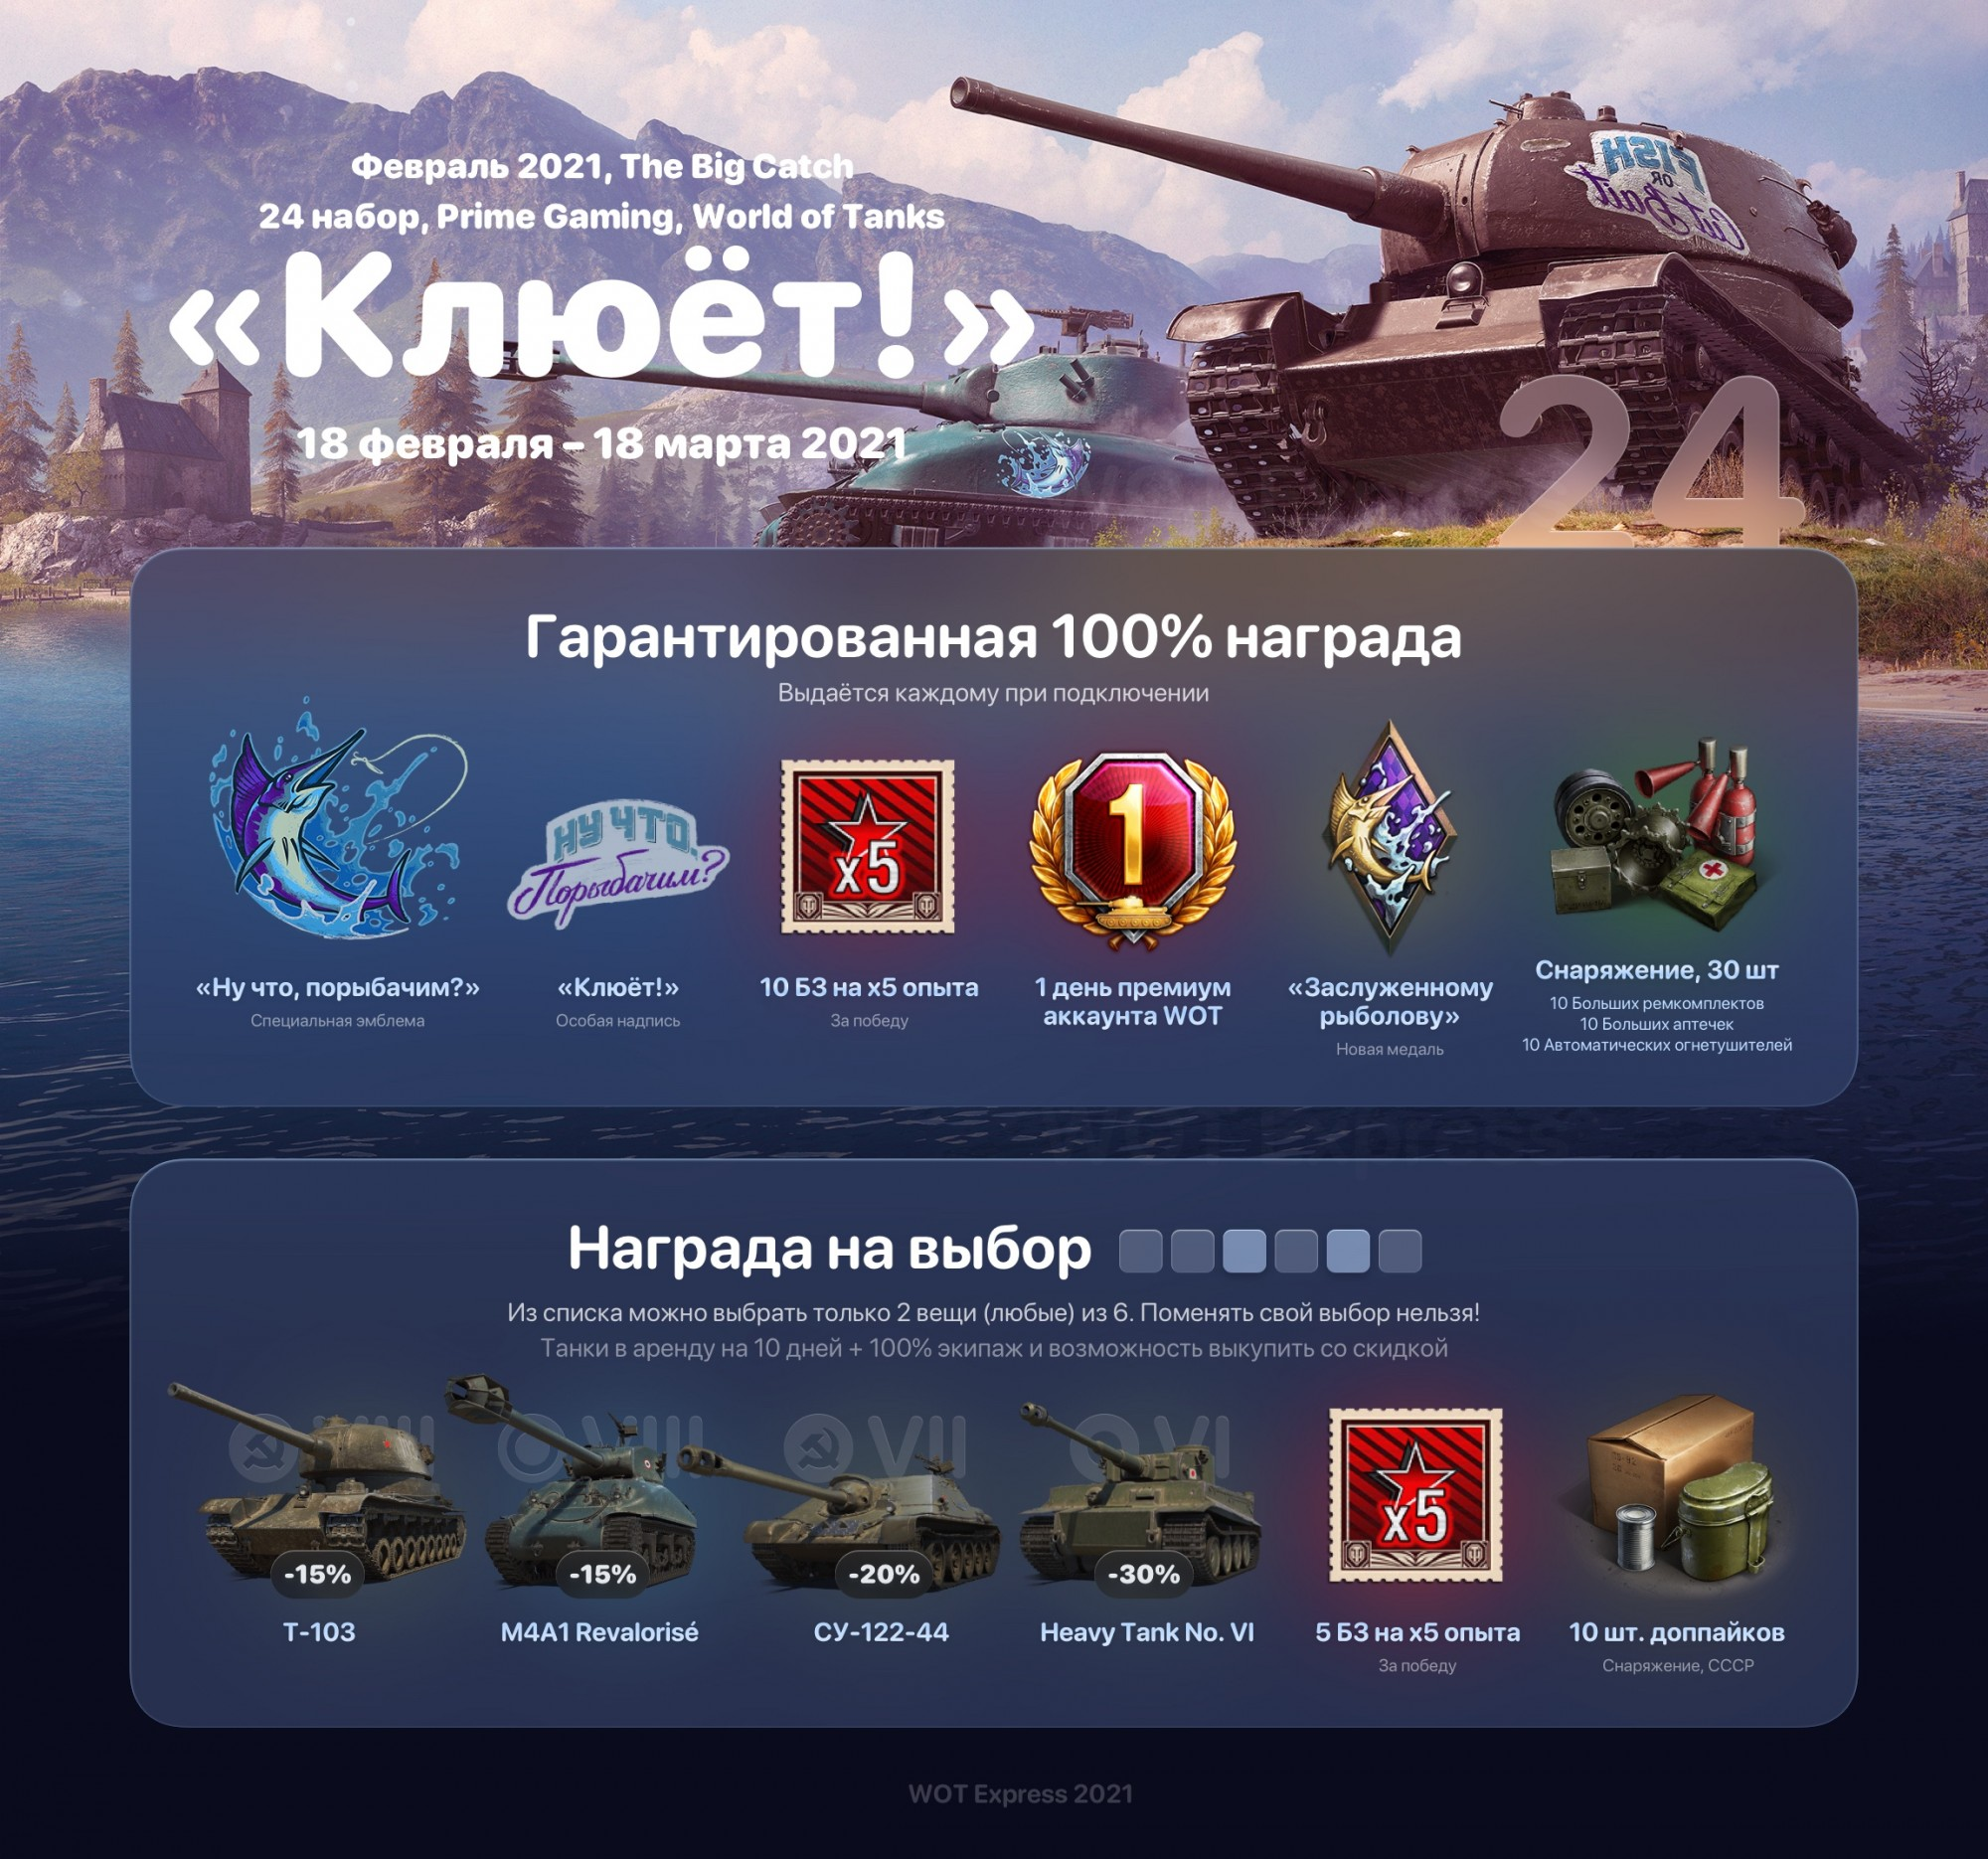 24 набор для World of Tanks доступен подписчикам Prime Gaming